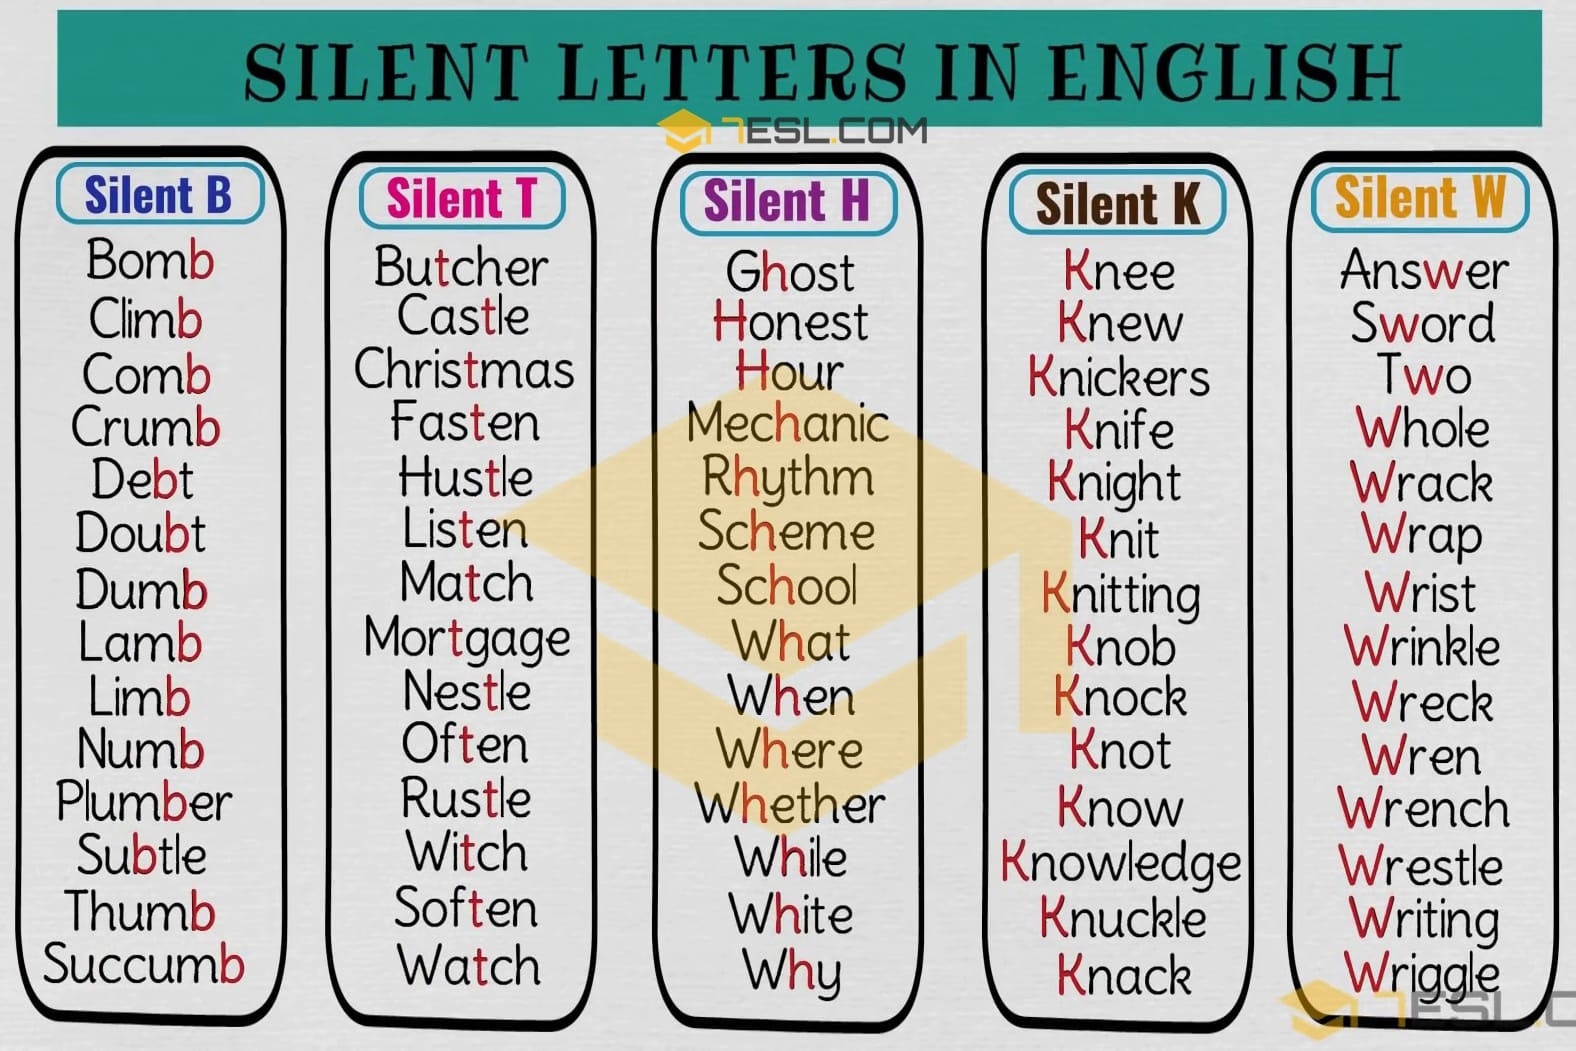 Silent Letters Useful List Of Words With Silent Letters 7 E S L